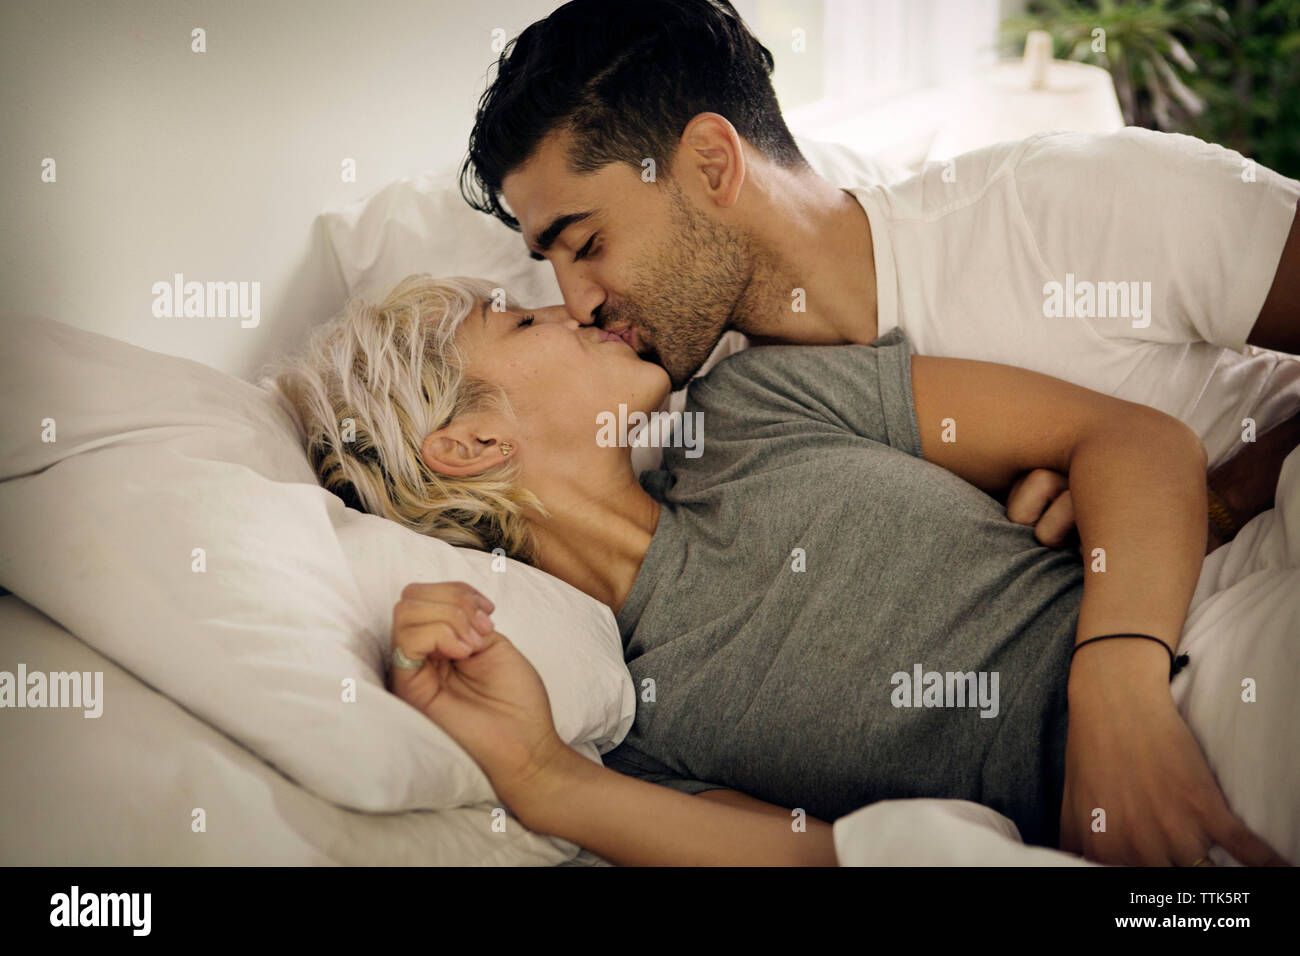 Young couple kissing on bed at home - Stock Image